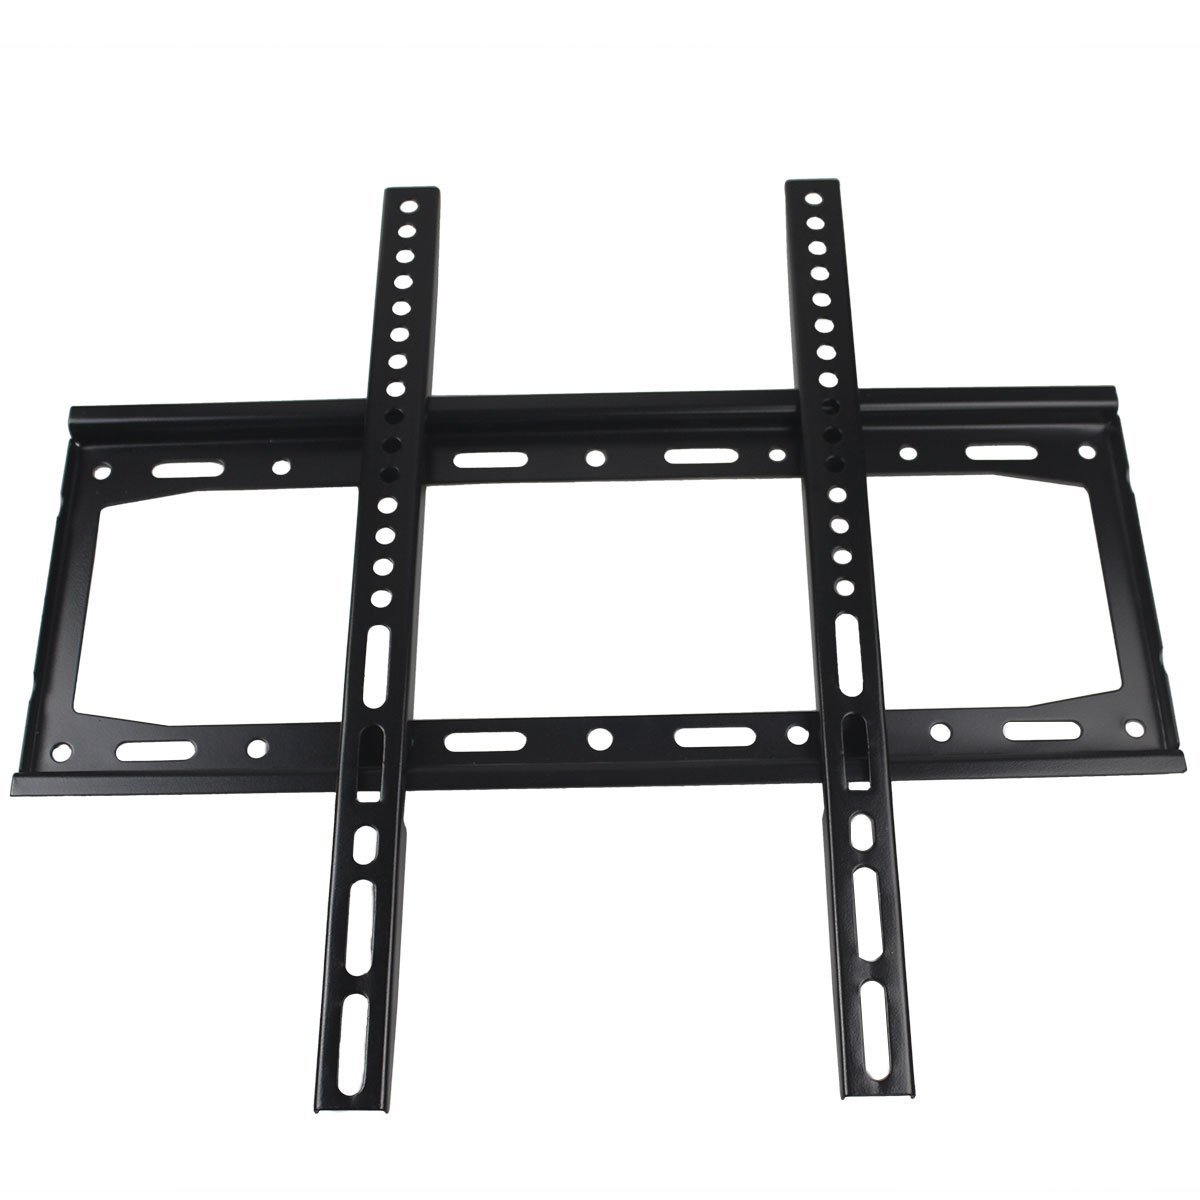 TV Bracket Wall Mount Fixed Universal for 26 27 32 37 40 42 43 46 47 50 51 52 55 inch LCD LED Plasma Flat Panel Screen